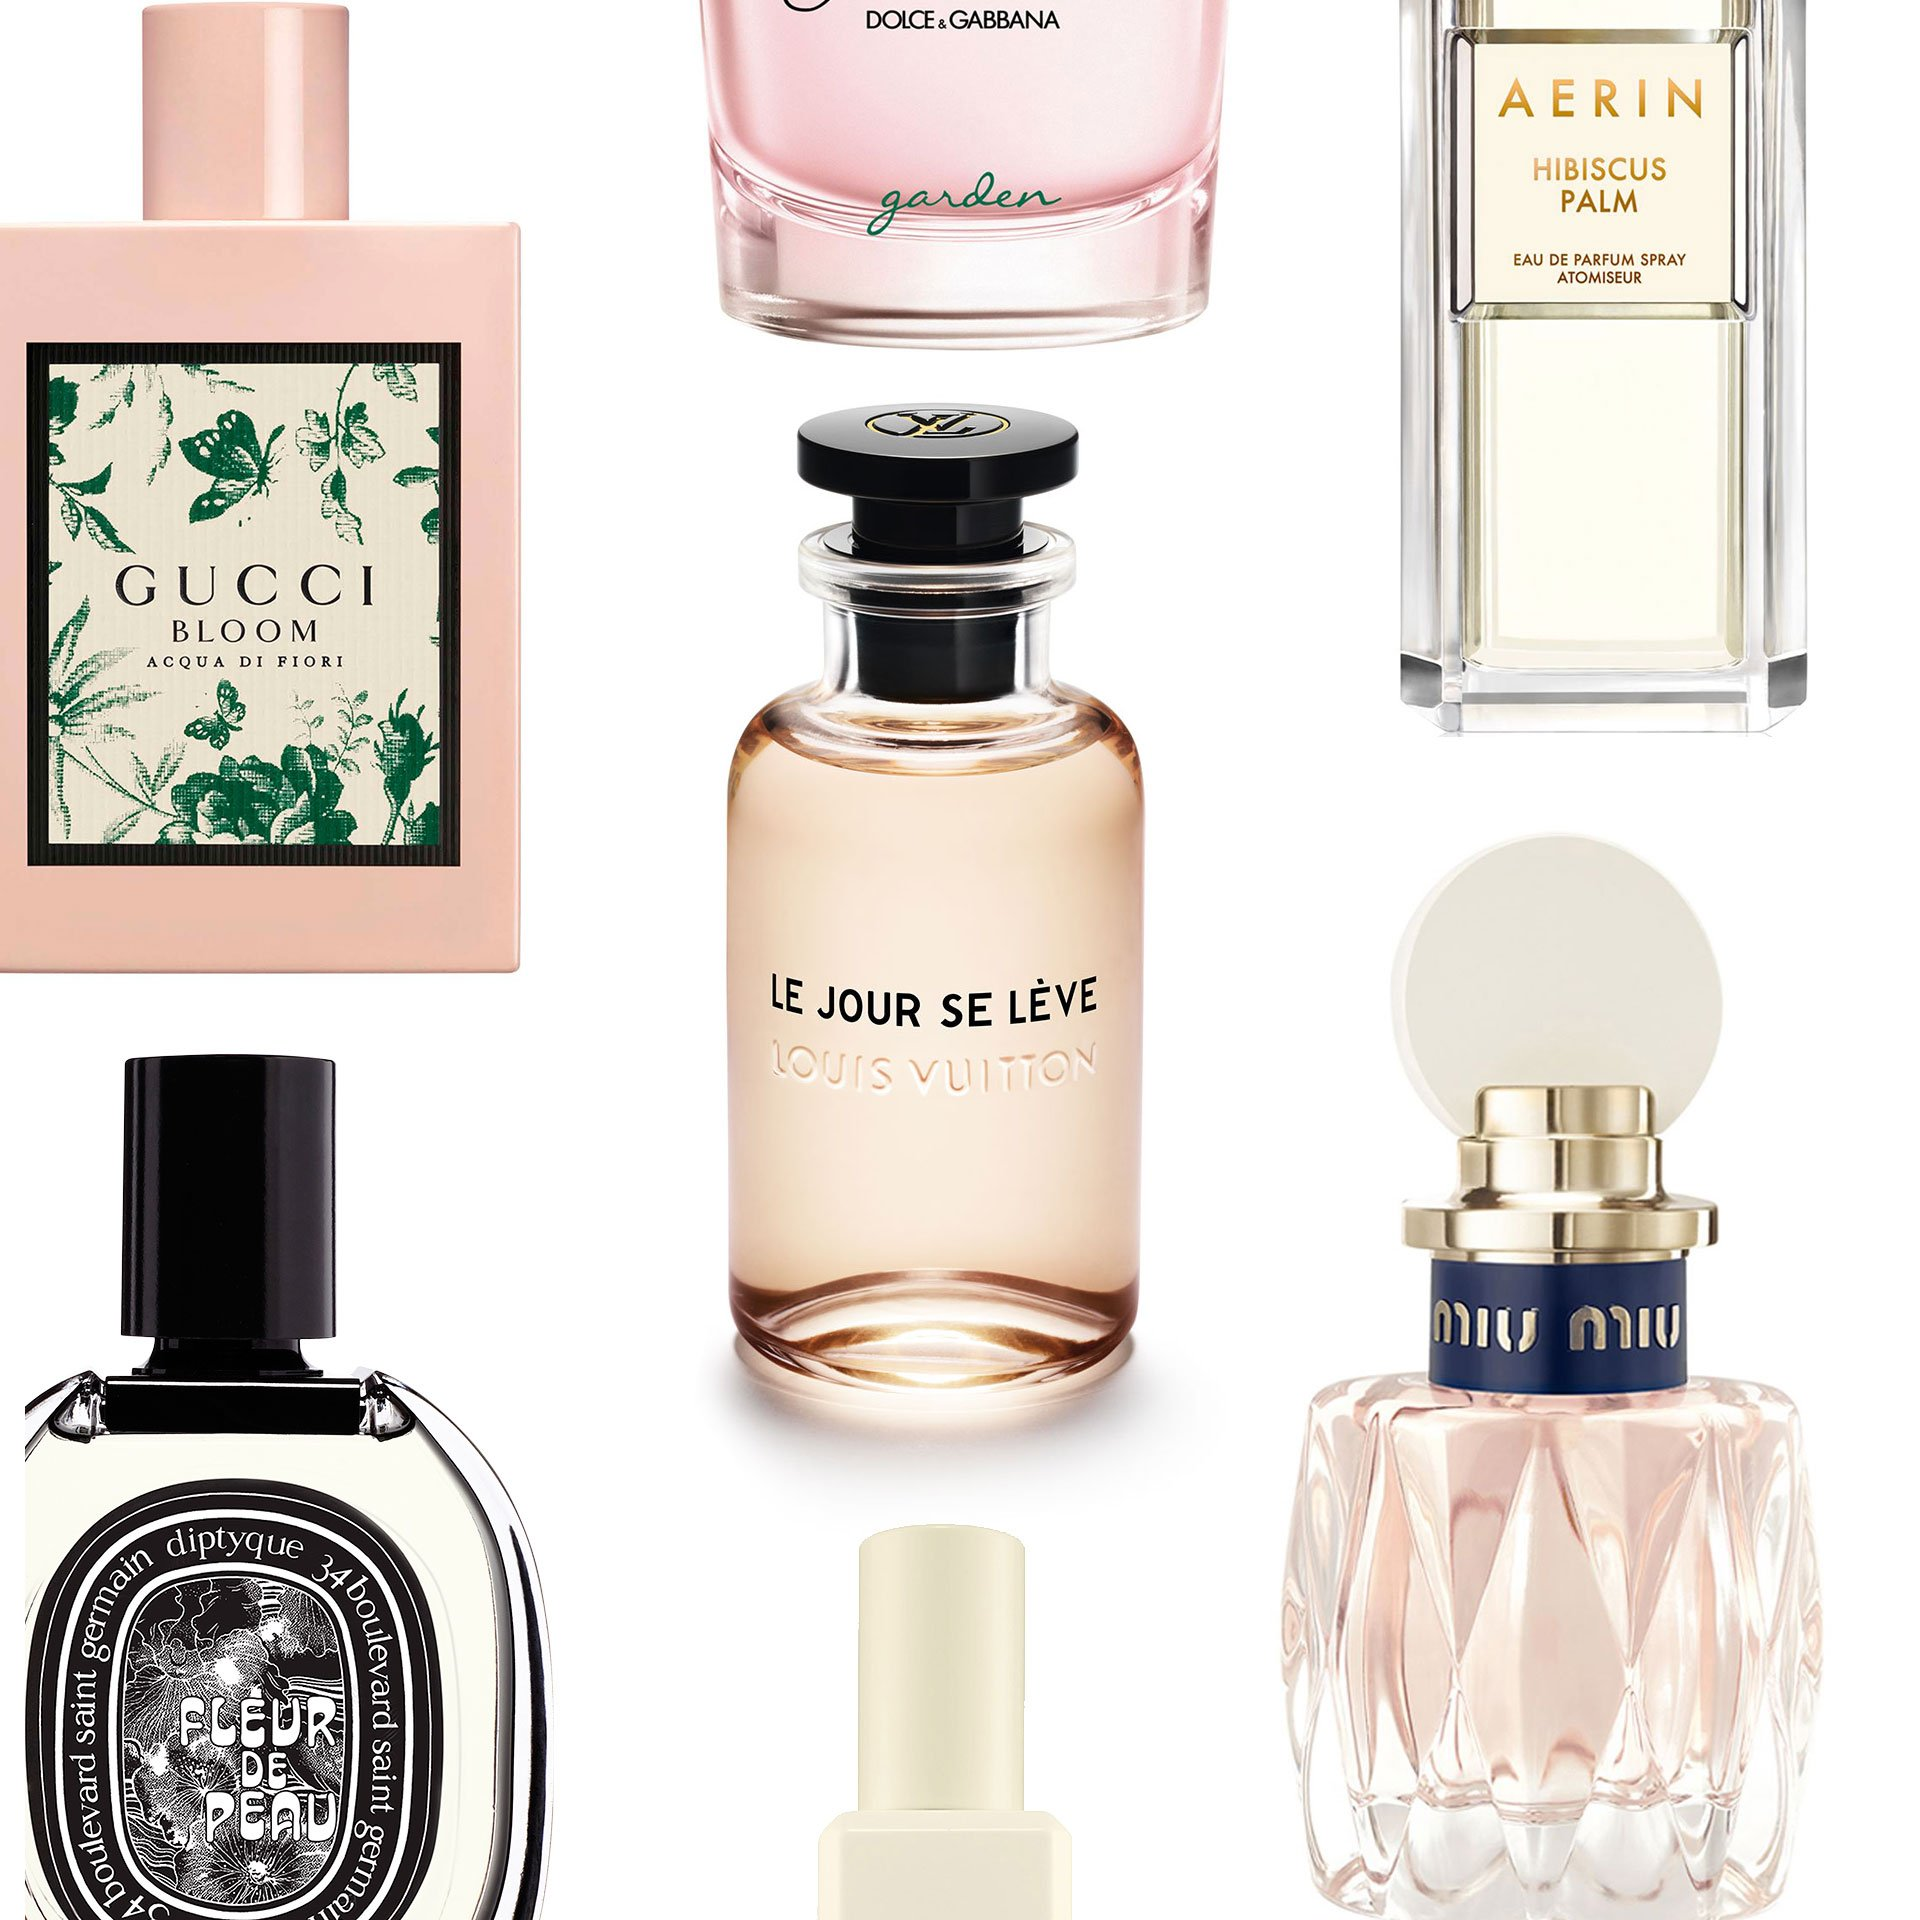 Embrace spring with these 10 fresh new fragrances: https://t.co/sF8w7MsK4H https://t.co/yVMUKfSJpO